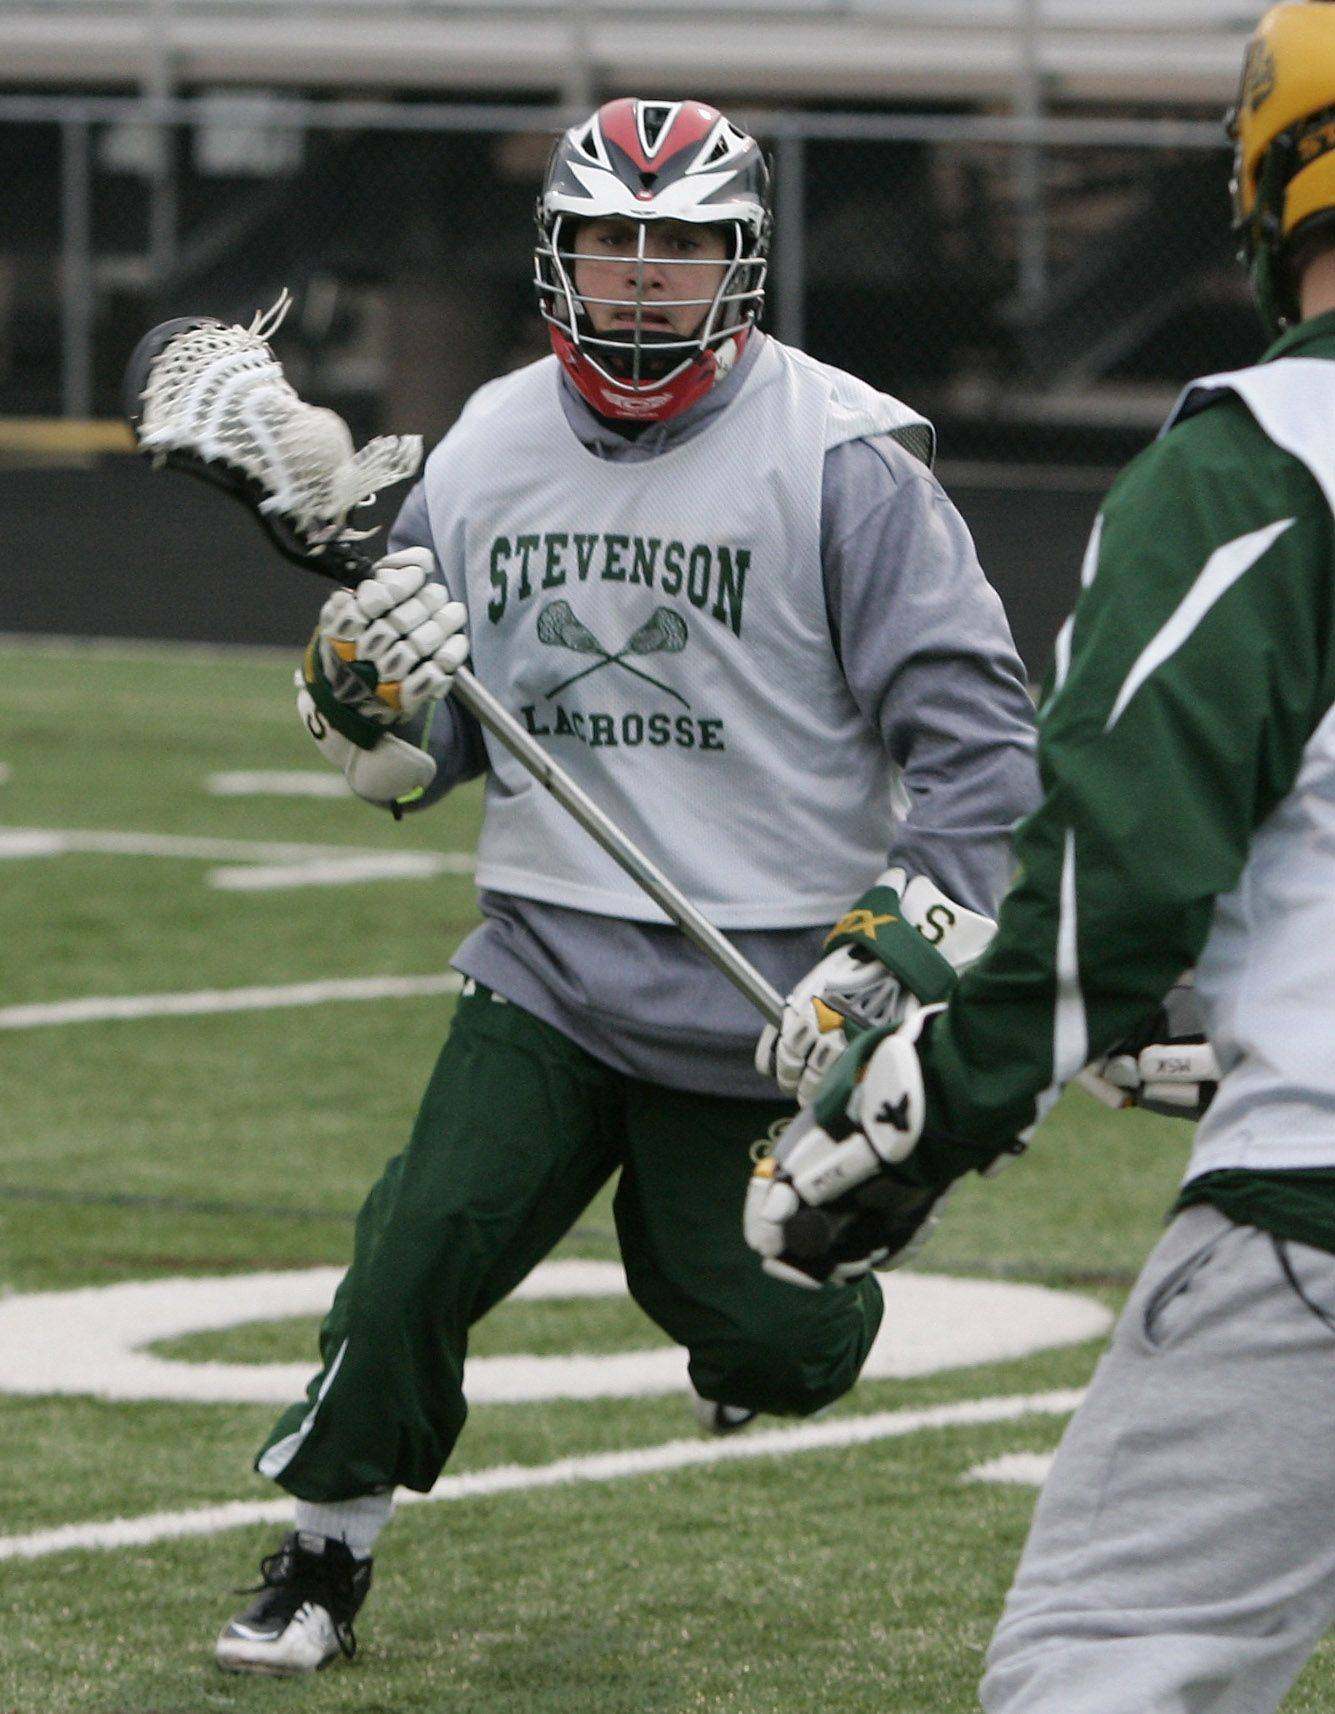 Attacker Adam Cook moves around a defender during the boys lacrosse team practice at Stevenson High School in Lincolnshire.